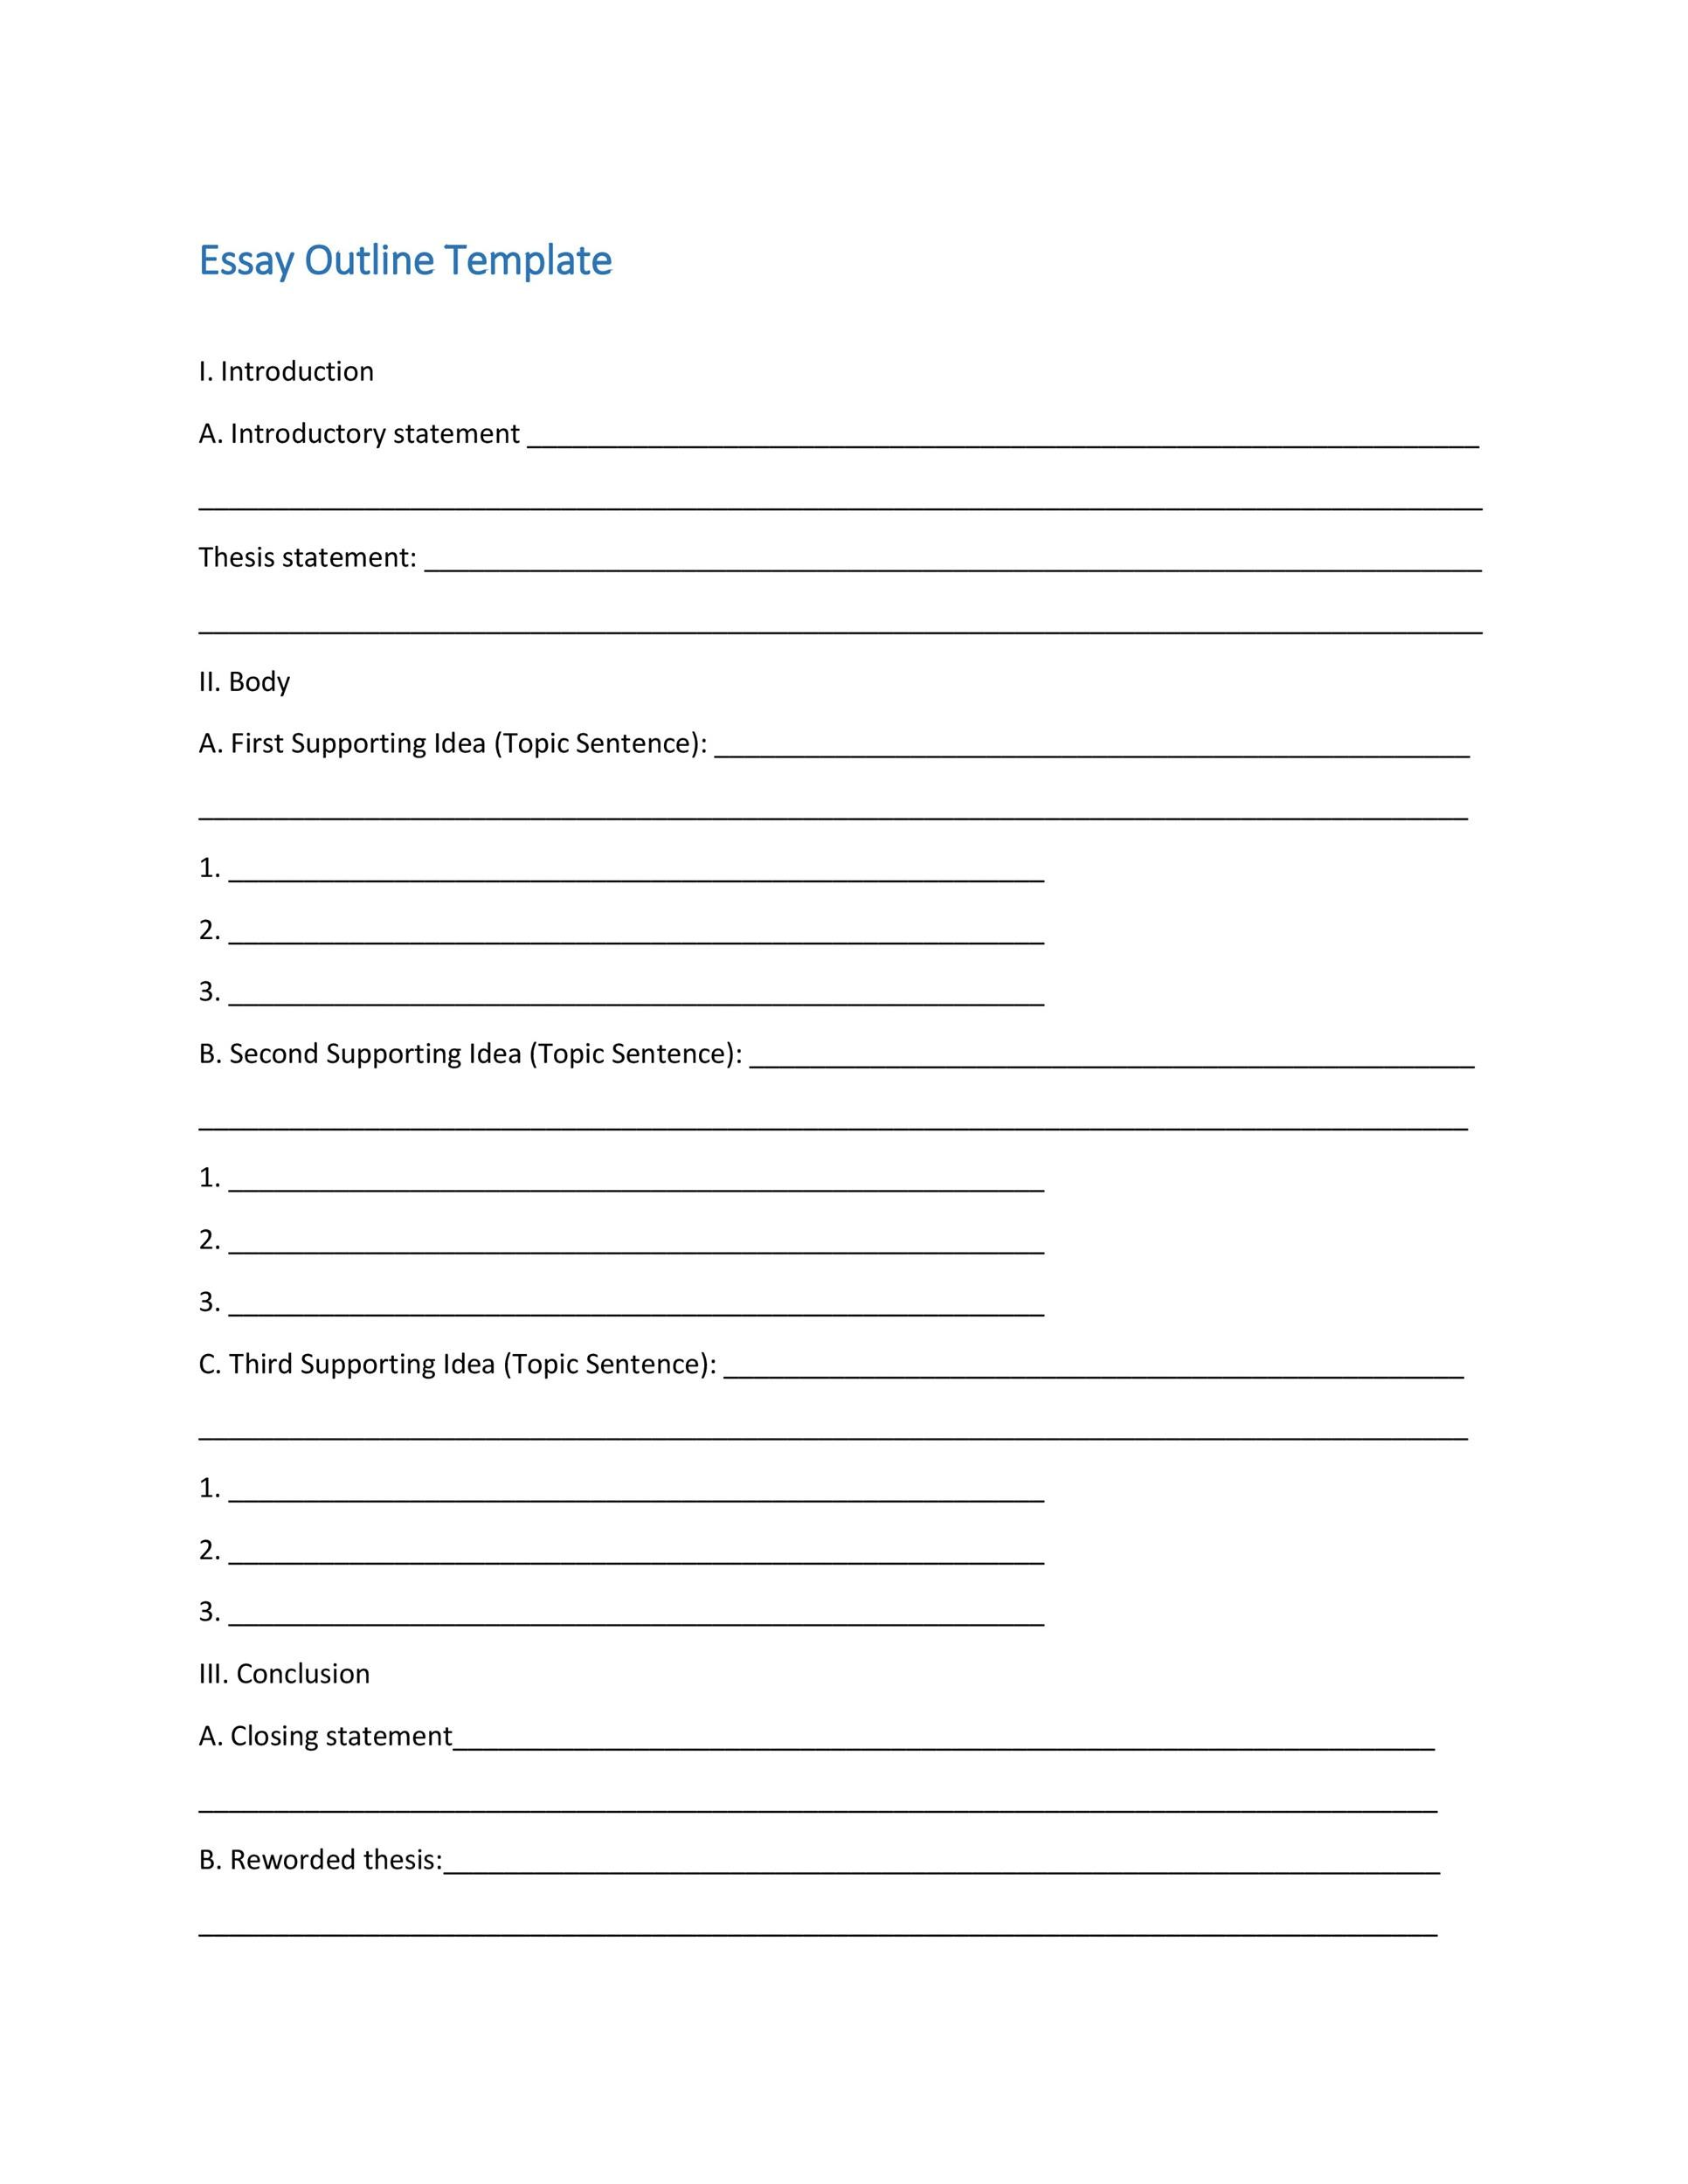 essay outline printable Essay outline template printable just imagine if you can create your own resume like a professional resume writer and save on cost now you can.